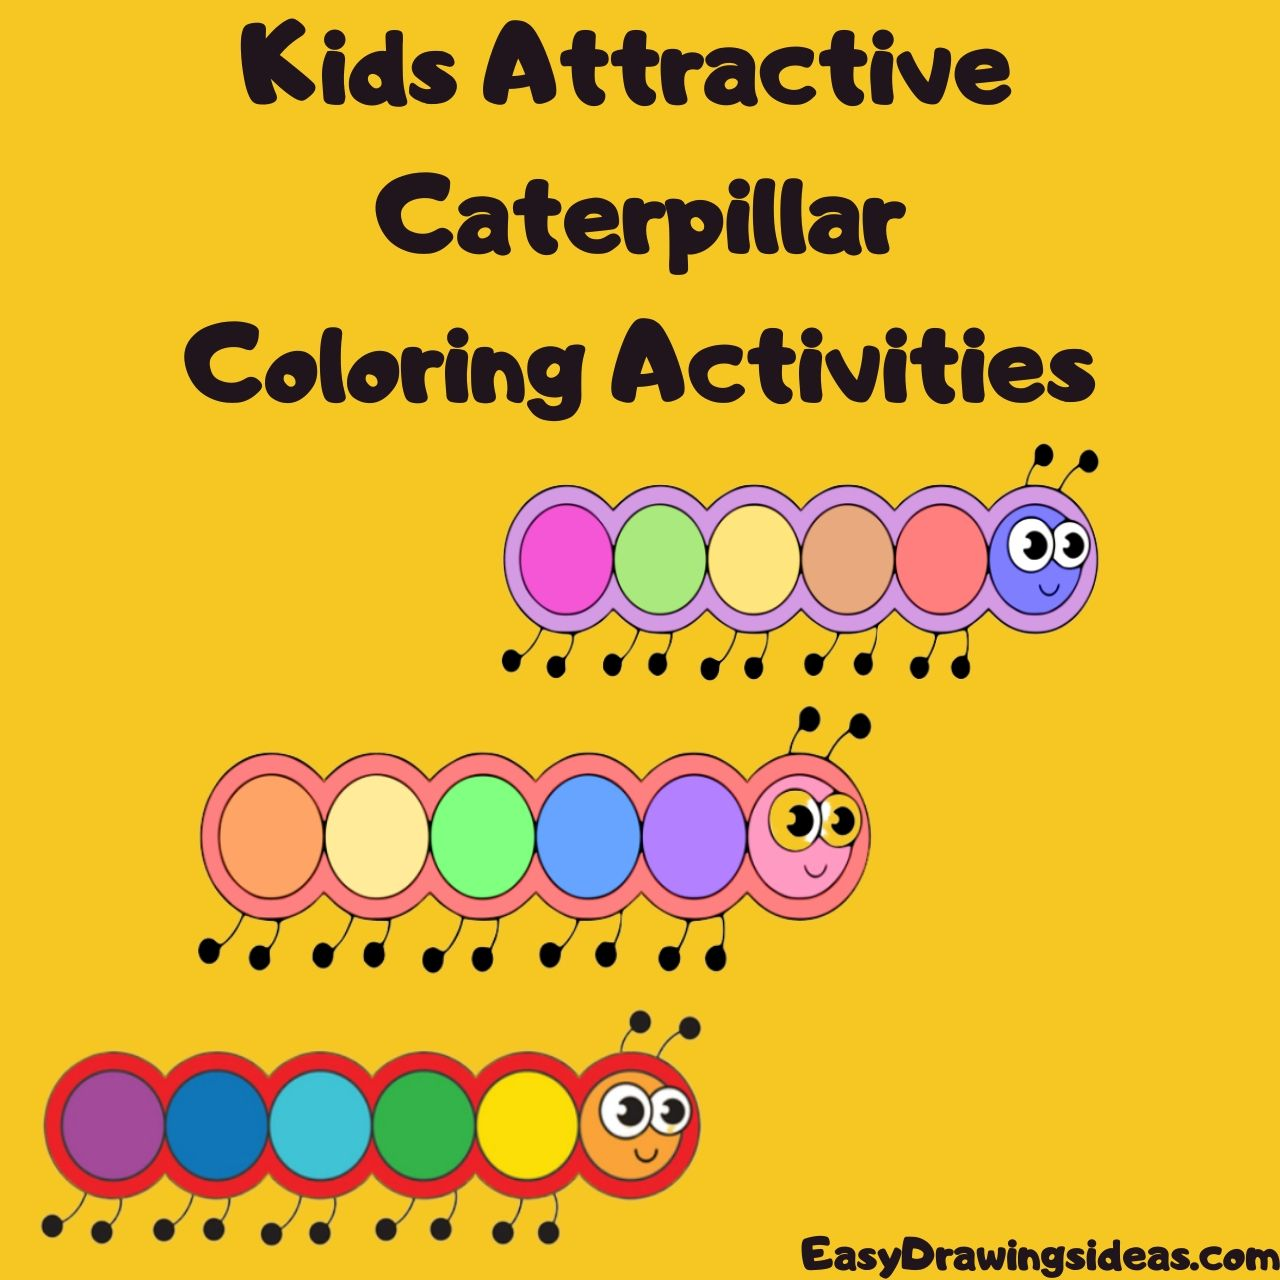 Kids Attractive caterpillar Coloring Activities FOR KIDS STEP BY STEP